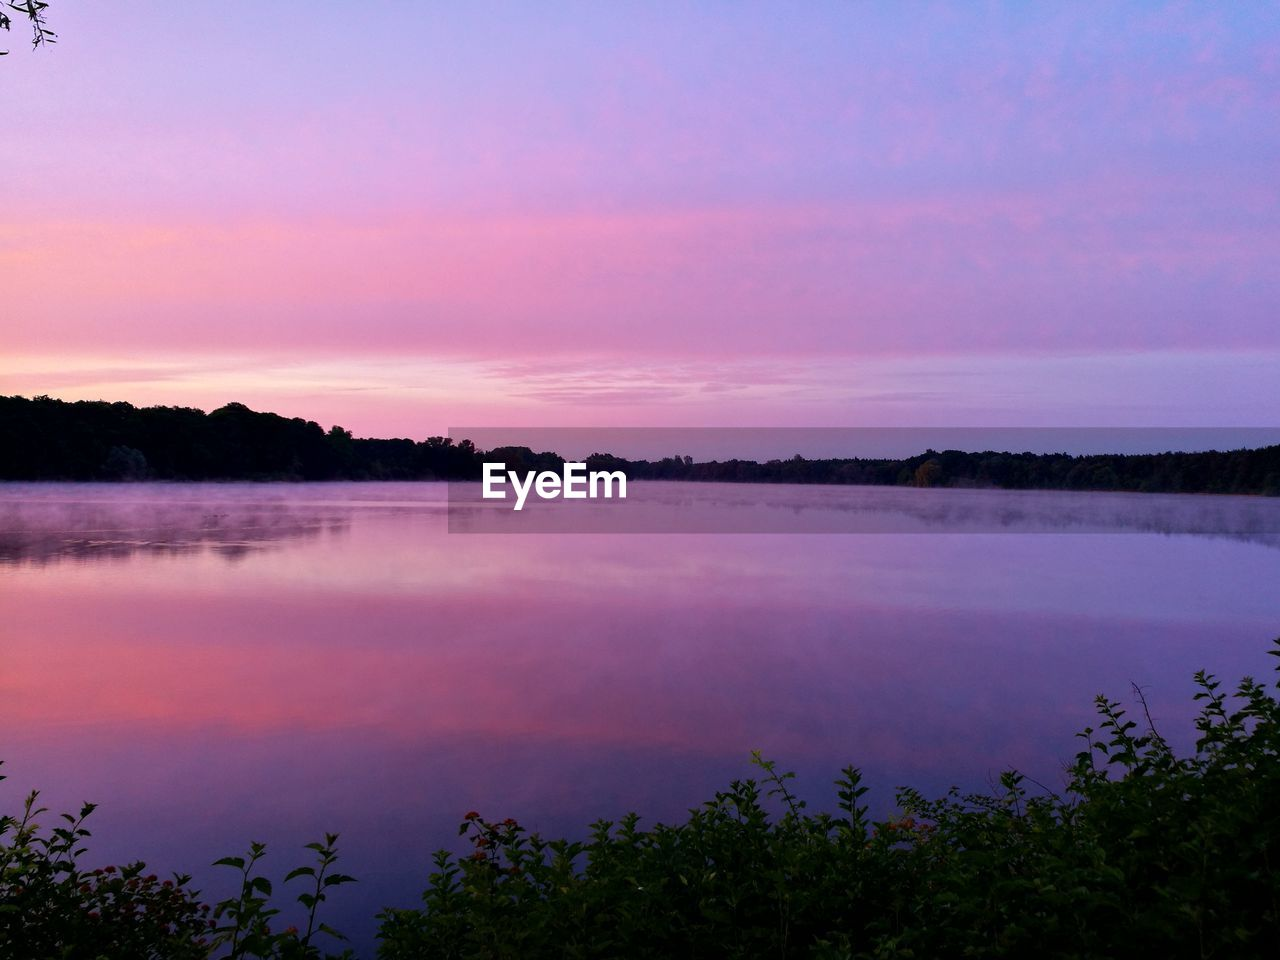 beauty in nature, tranquil scene, nature, tranquility, scenics, water, reflection, lake, idyllic, sunset, sky, no people, outdoors, tree, standing water, purple, day